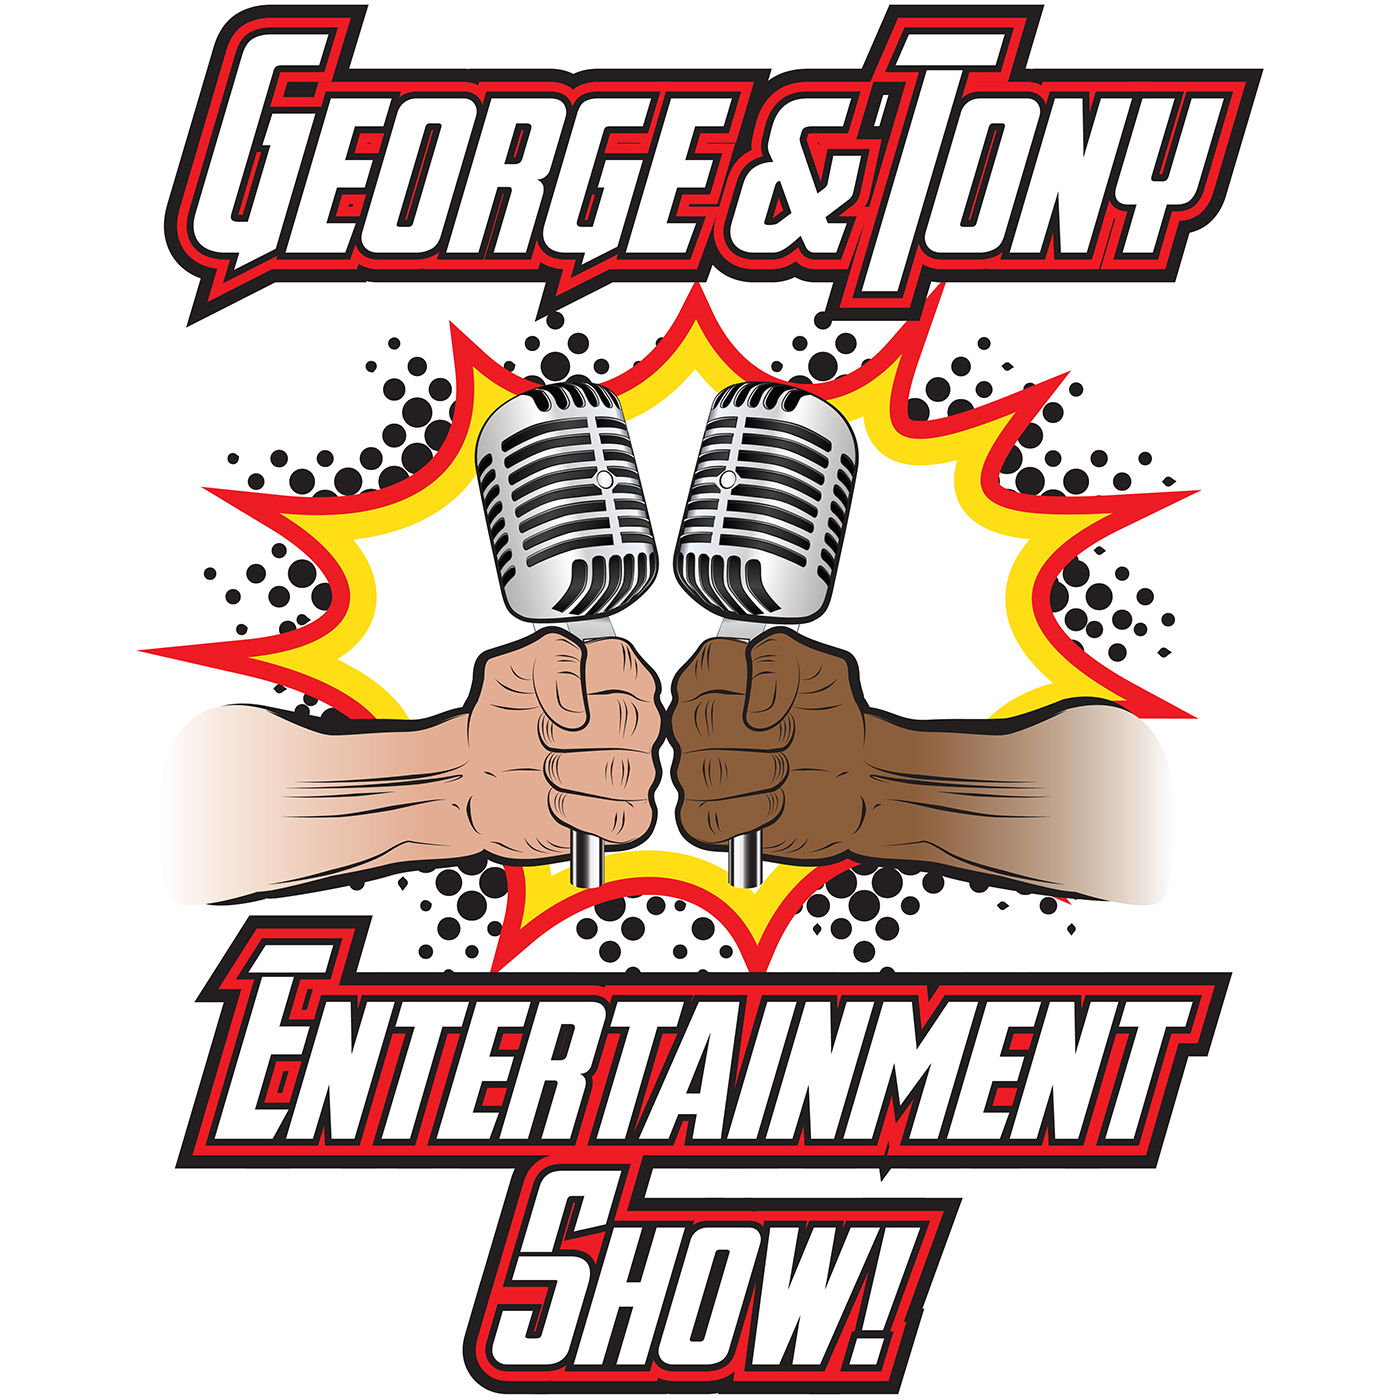 George and Tony Entertainment Show #119